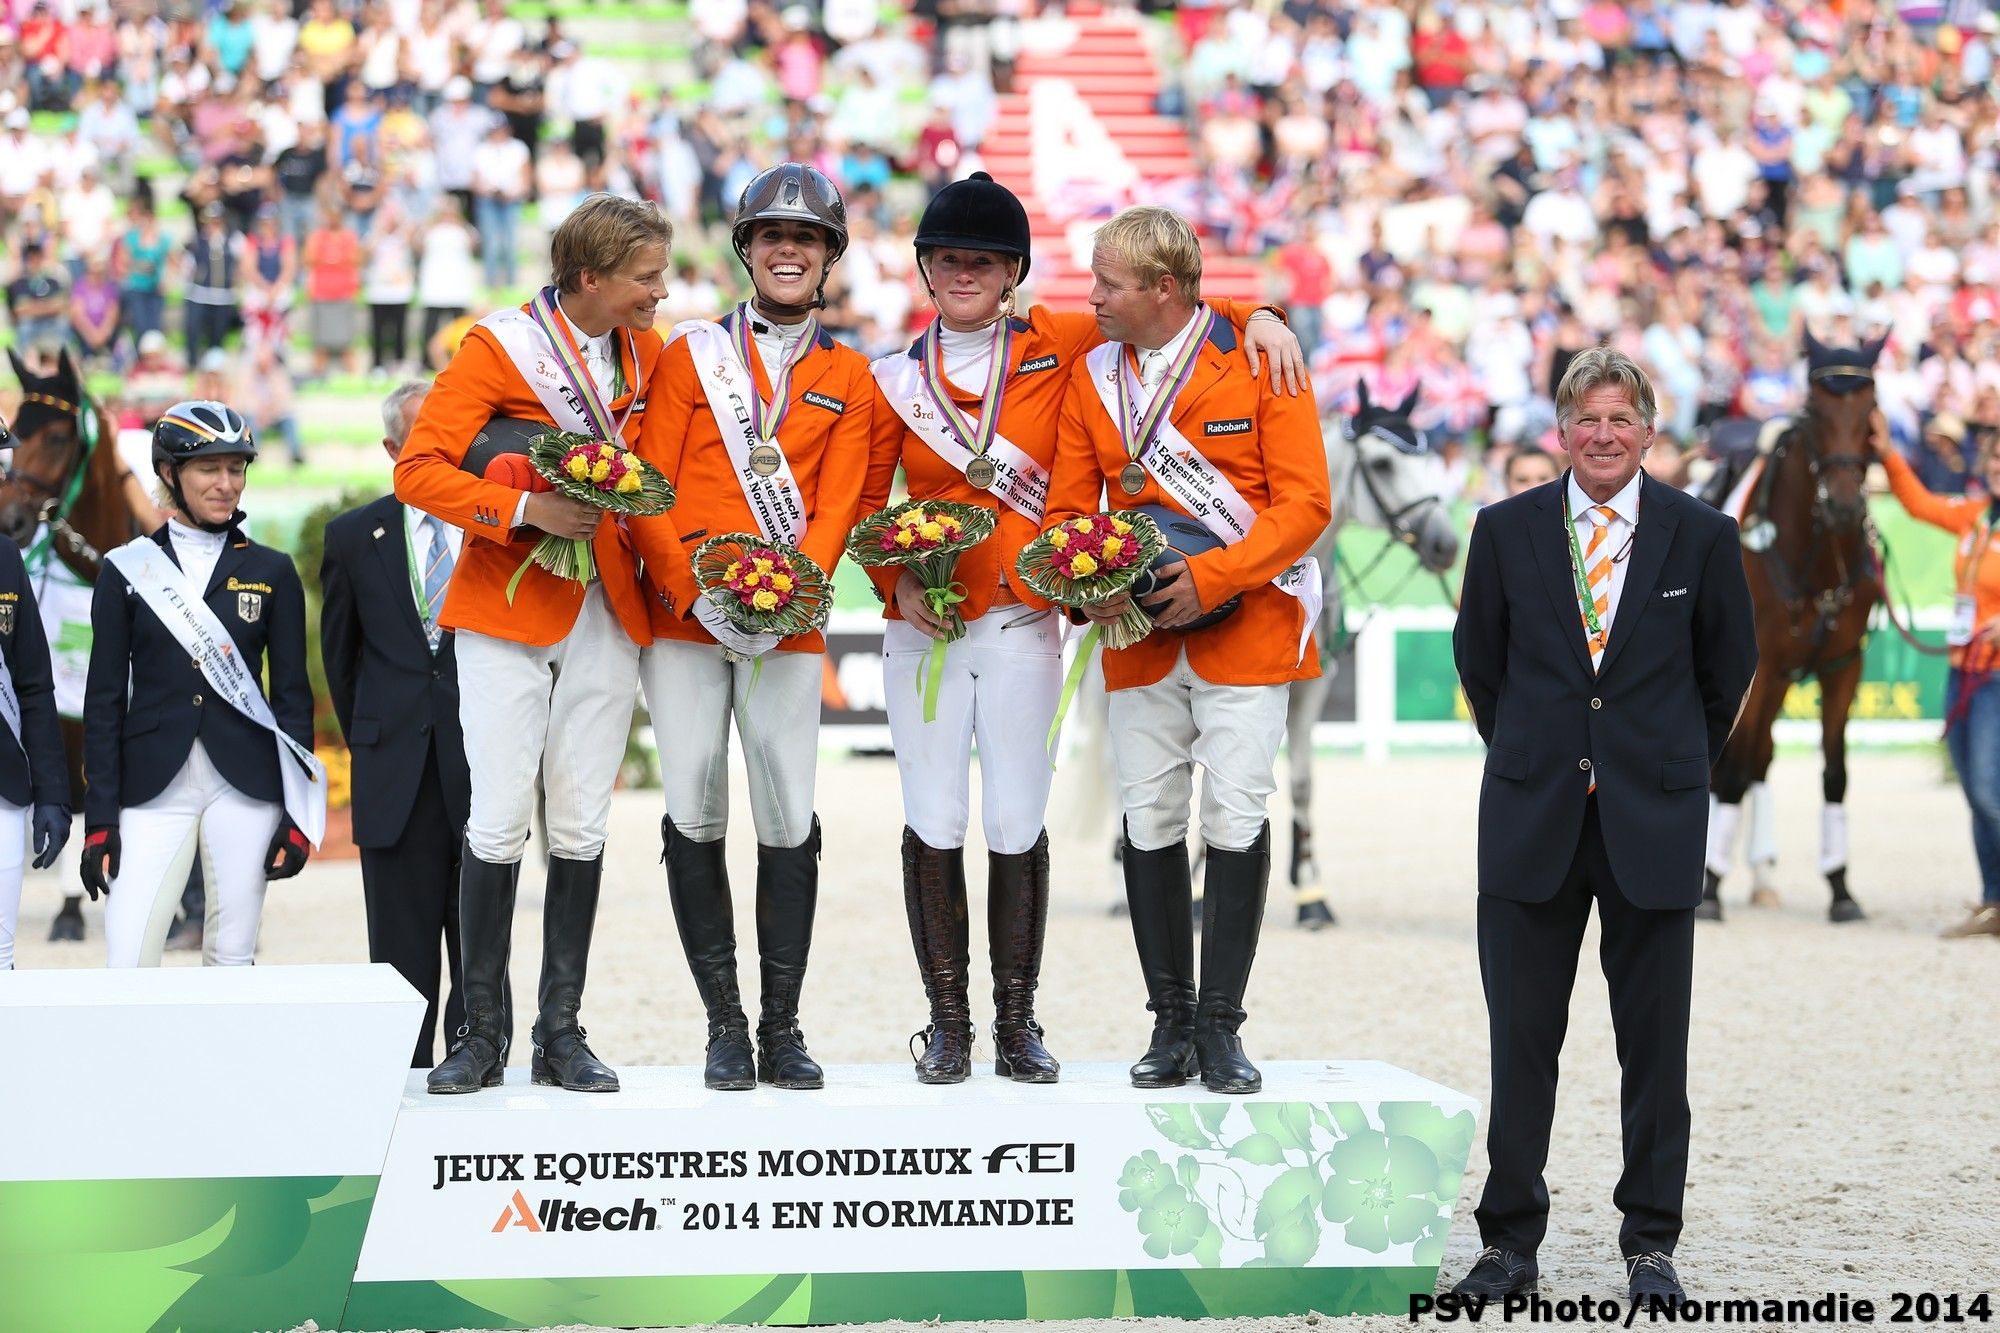 Eventing Jumping - Bronze medalist - August 31th - Copyright : PSV Photo